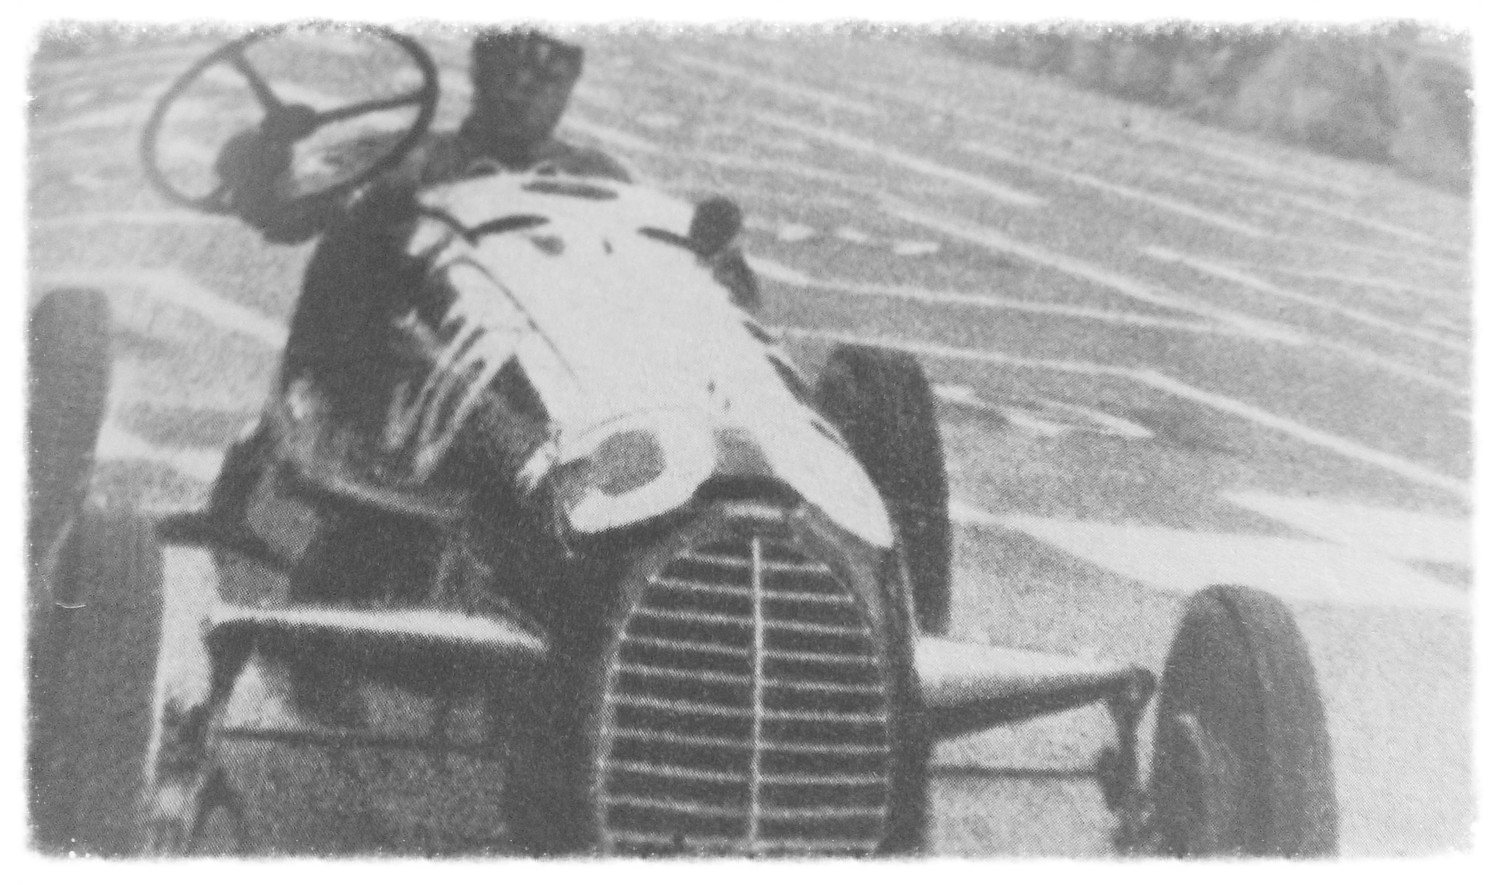 Nuvolari uses a wrench to steer